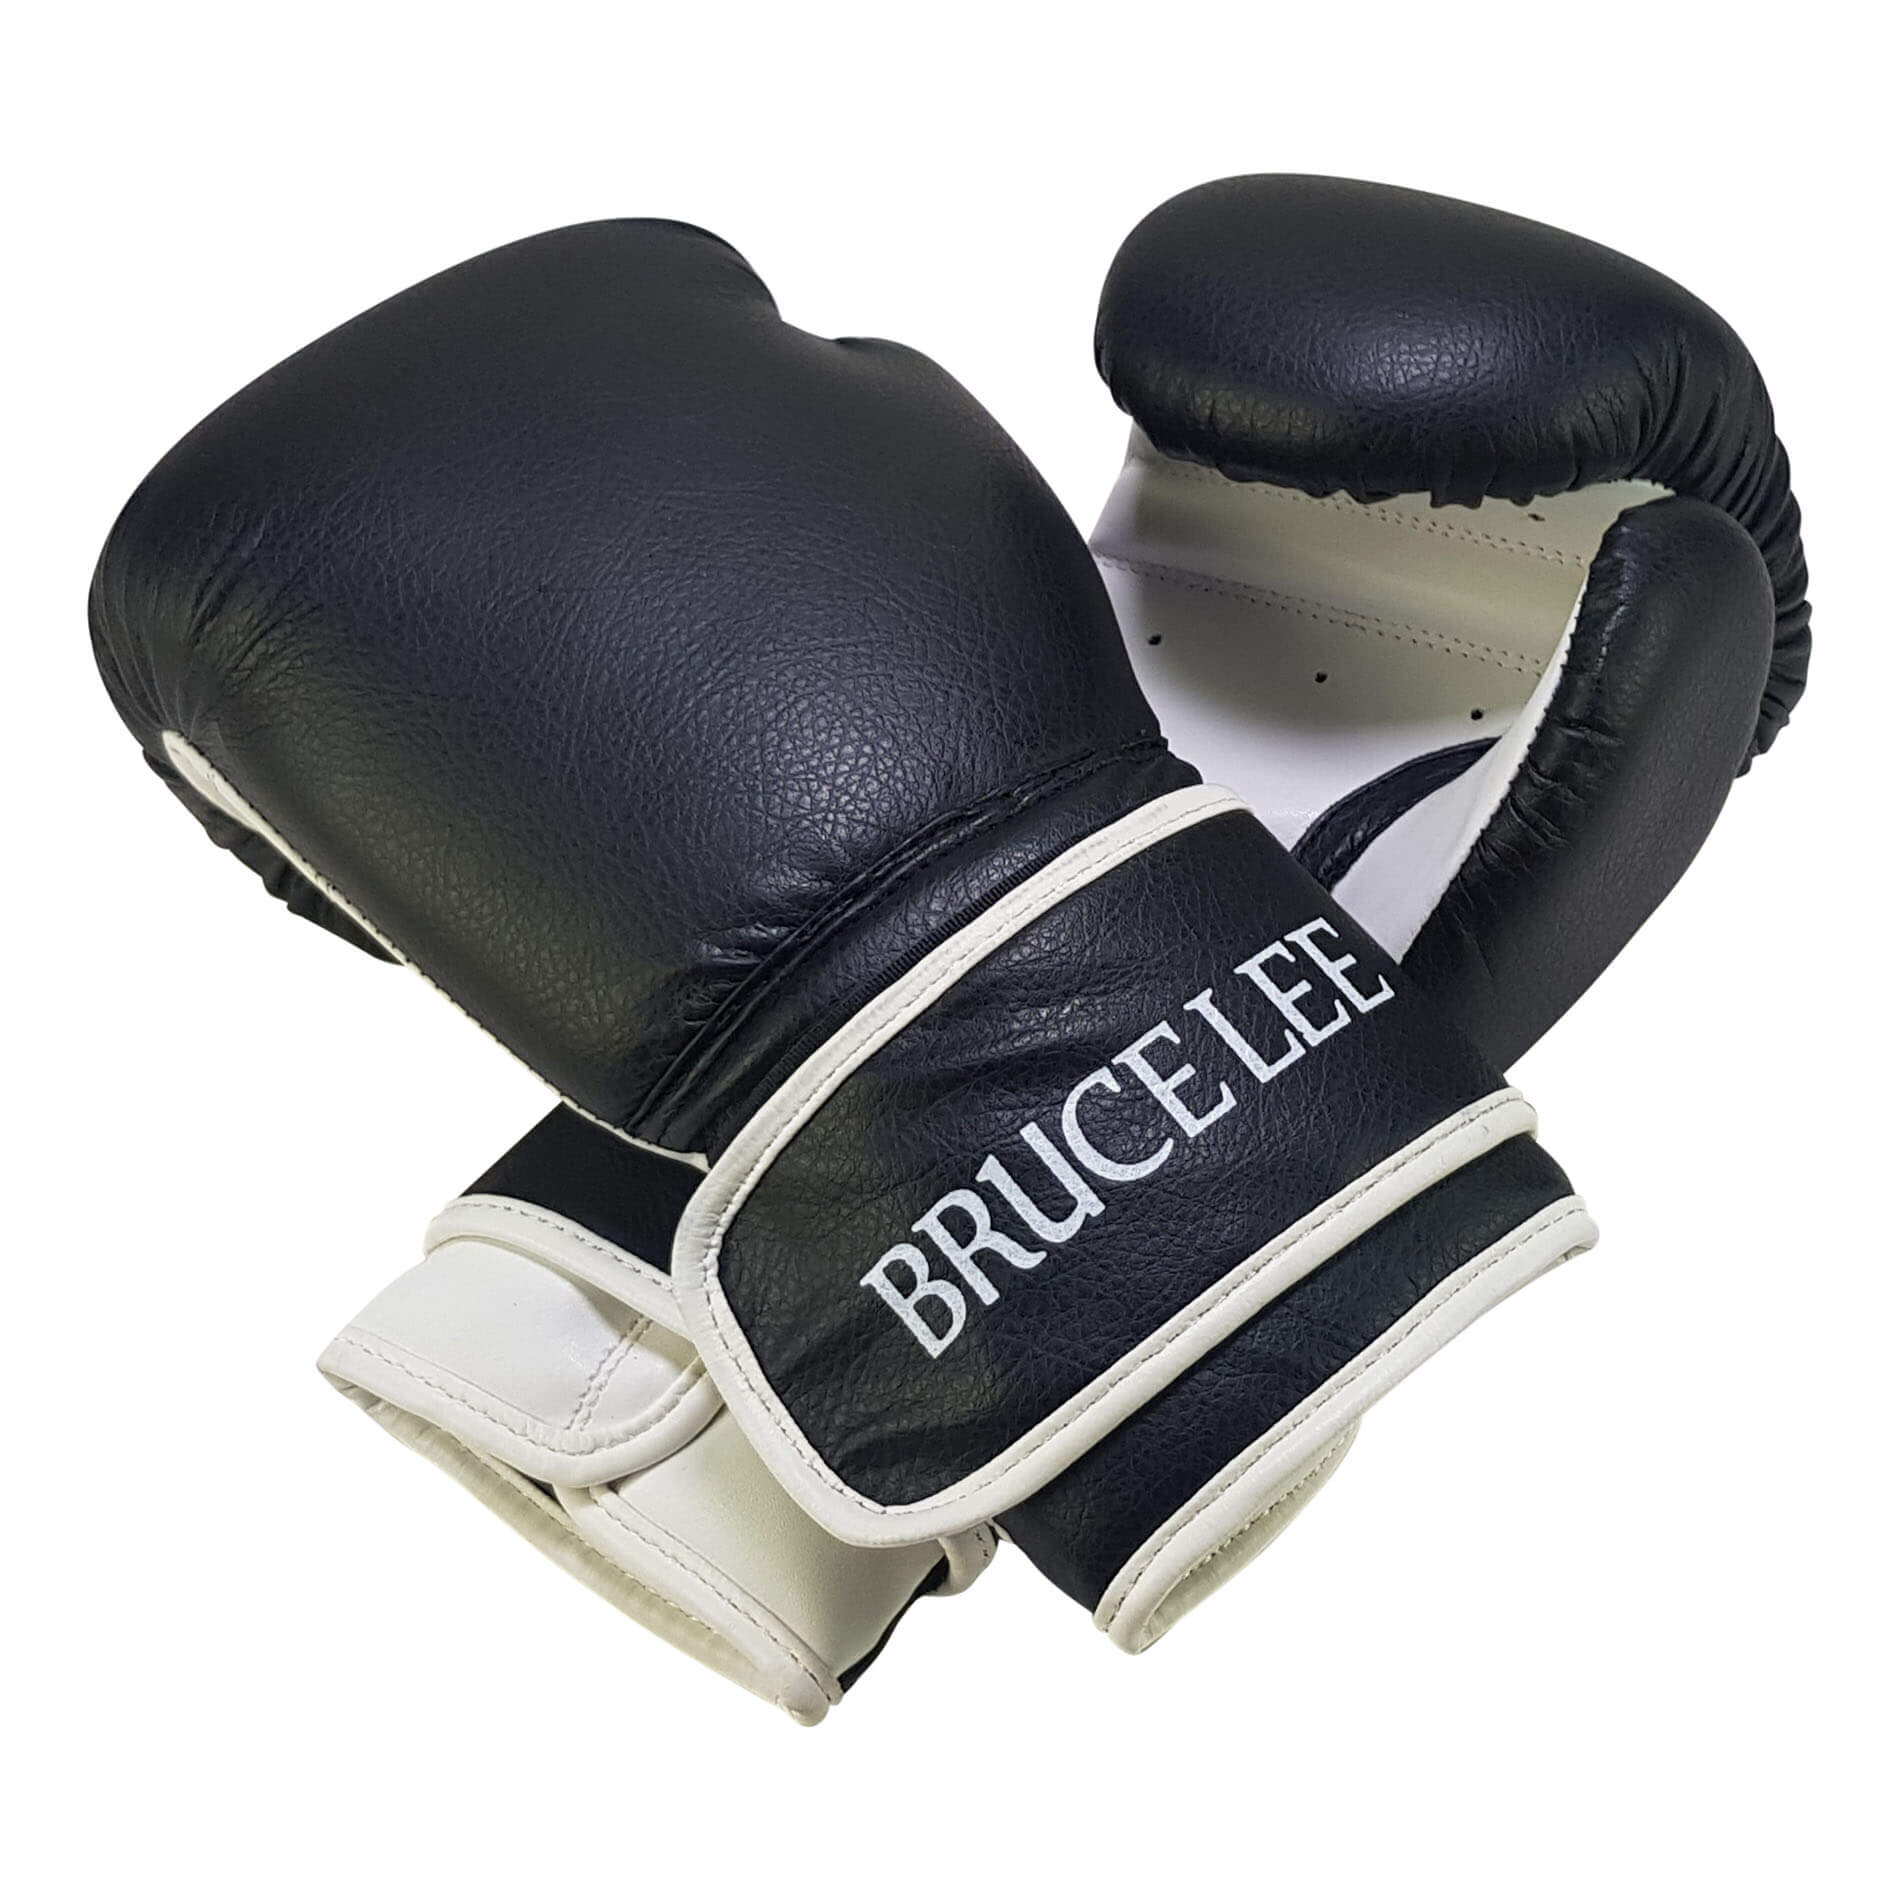 Allround Boxing Gloves